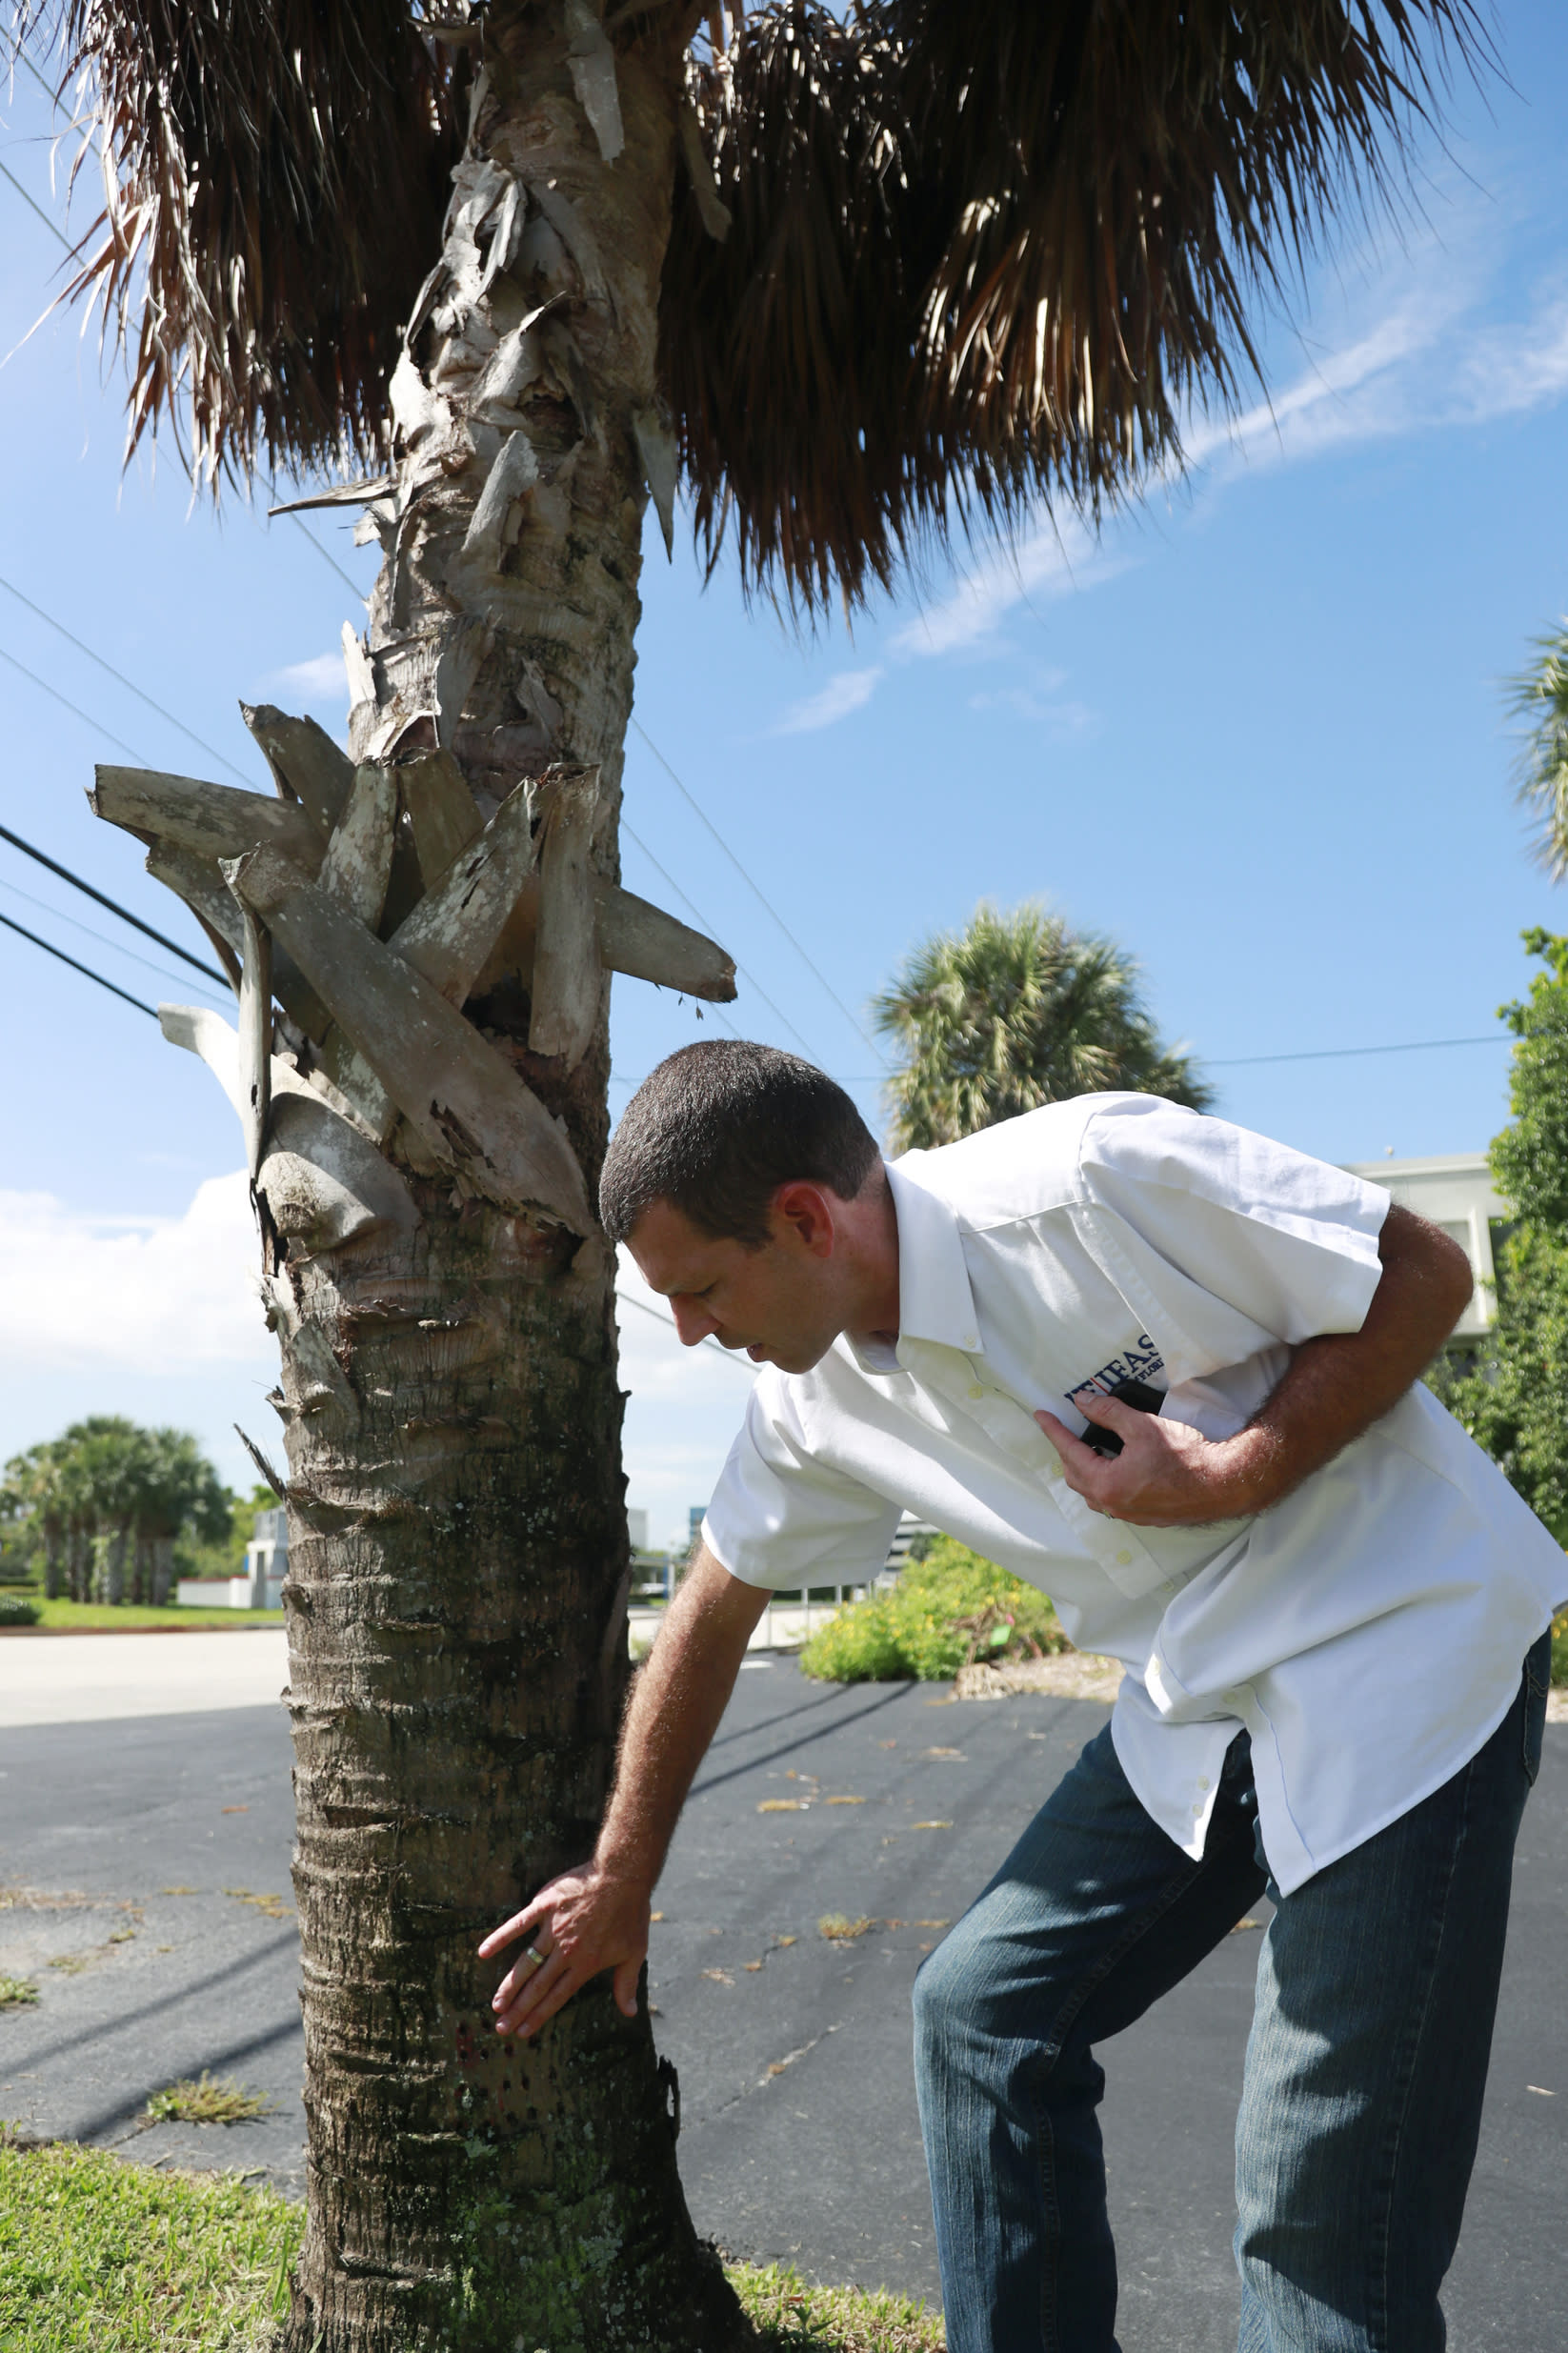 "In this Wednesday, July 31, 2019, photo, Brian Bahder, assistant professor of entomology at the University of Florida, points to a cabbage palm tree that died from a lethal bronzing disease in Davie, Fla. Florida's iconic palm trees are under attack from a fatal disease that turns them to dried crisps within months with no chance for recovery once ill. Lethal bronzing is caused by a bacteria spread by a rice-sized insect. It has gone from a small infestation on Florida's Gulf Coast to a statewide problem in a decade. ""Getting this disease under control is essential because it has the potential to drastically modify our landscape,"" said Bahder. (AP Photo/Wilfredo Lee)"